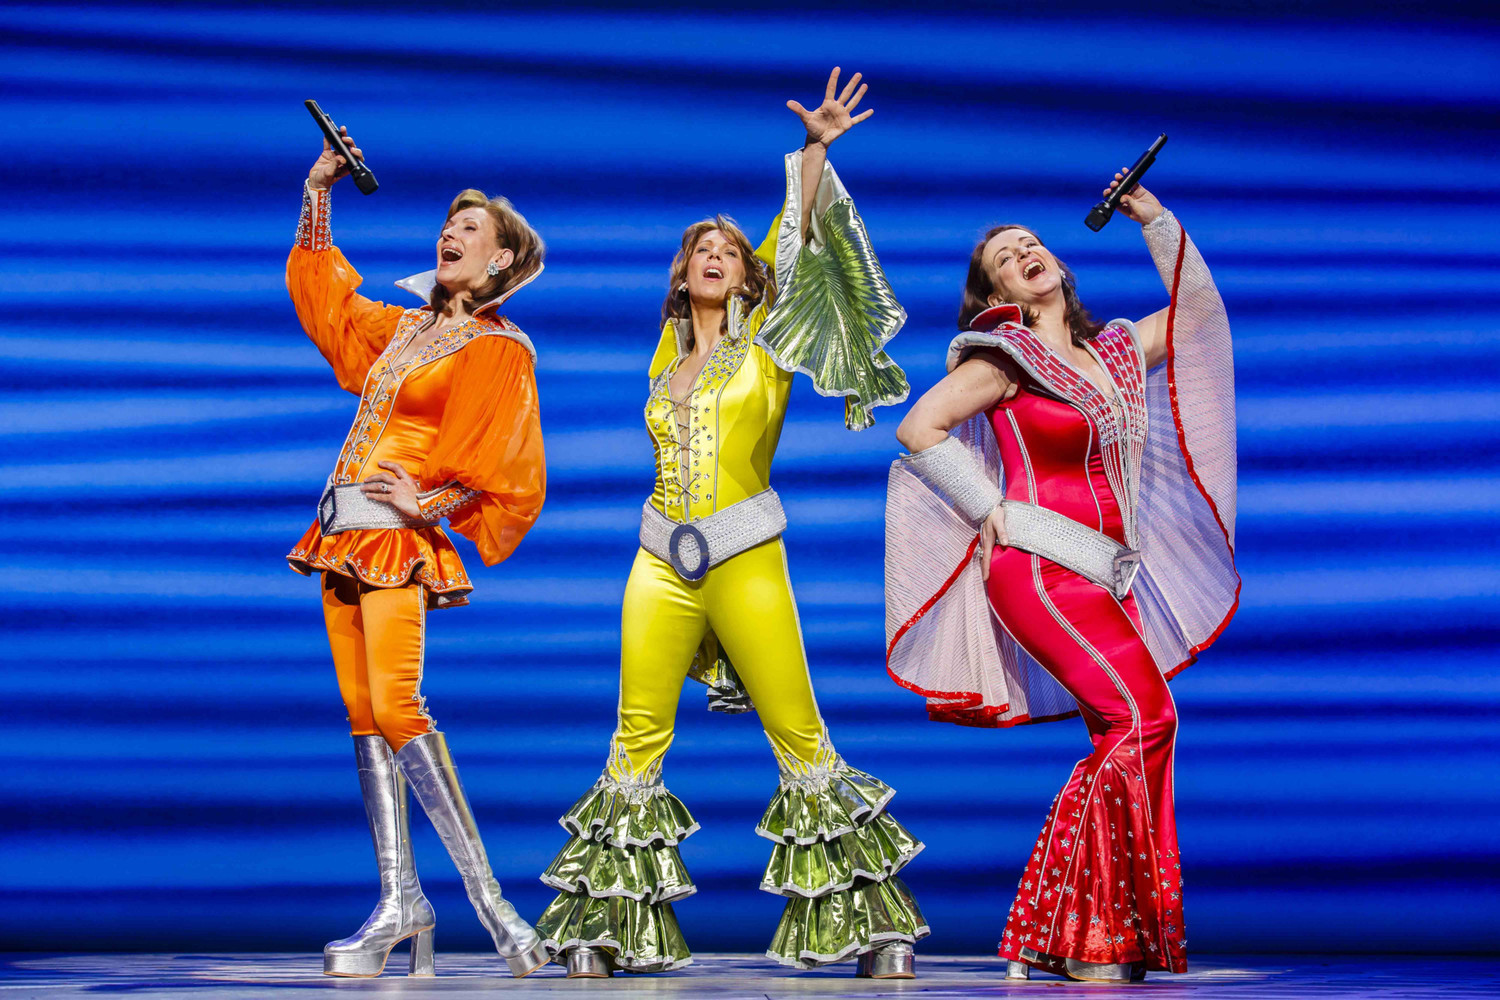 BWW Review: MAMMA MIA! at Stadthalle Wien